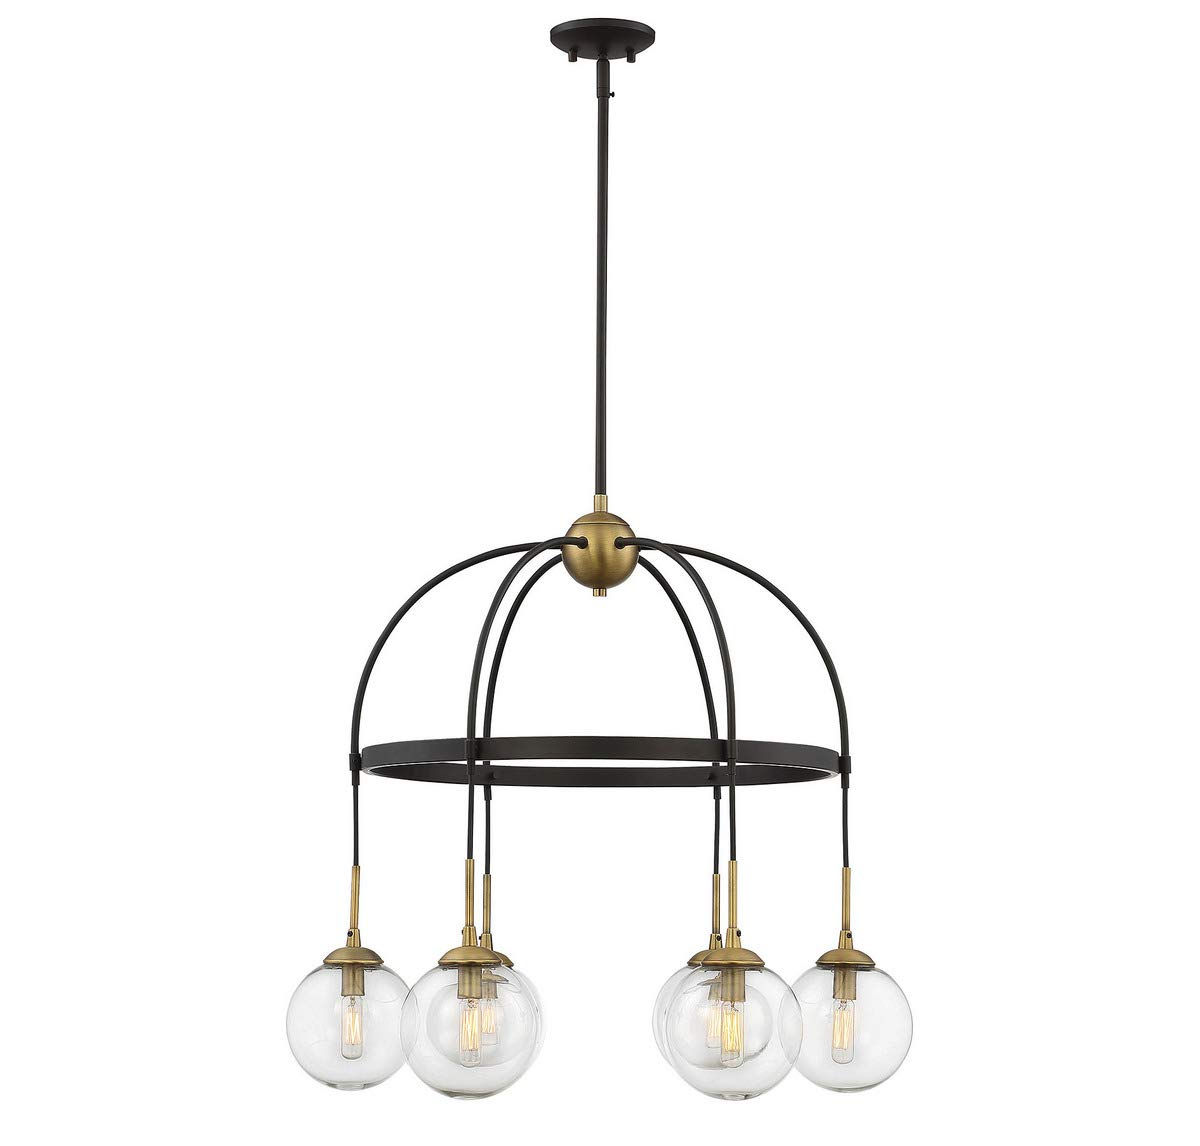 Alden 6 Light Globe Chandeliers With Regard To Most Recently Released Savoy House Fulton 6 Light Chandelier In English Bronze (View 21 of 25)